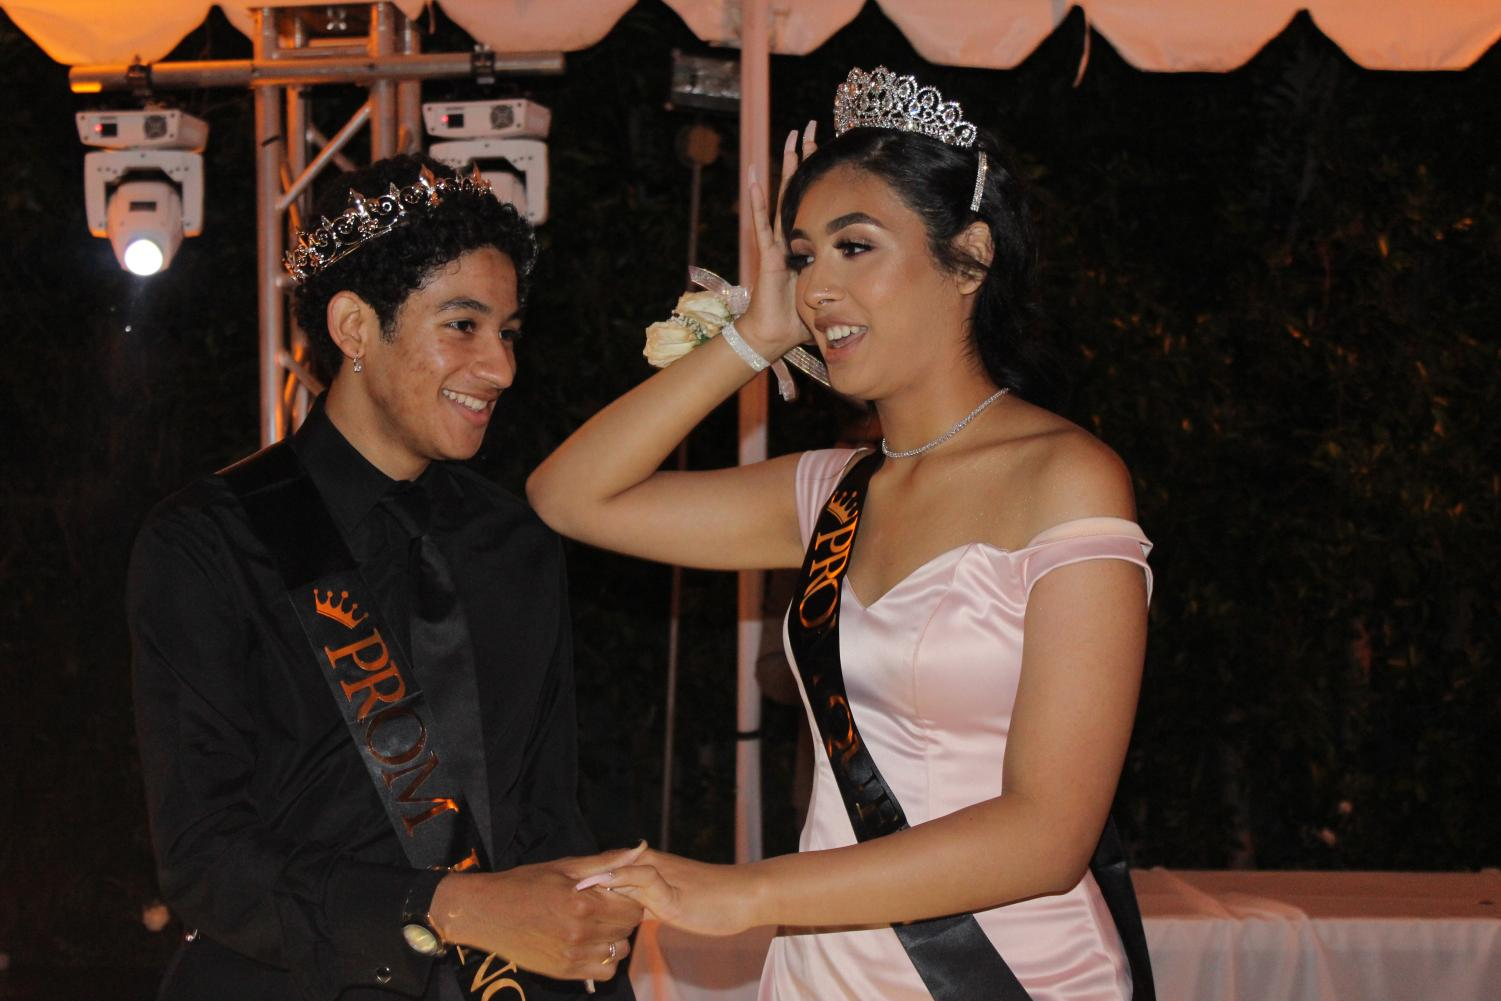 Seniors+Andres+Perkins+and+Briana+Ayala+start+to+dance+together+after+being+crowned+Prom+King+and+Queen.